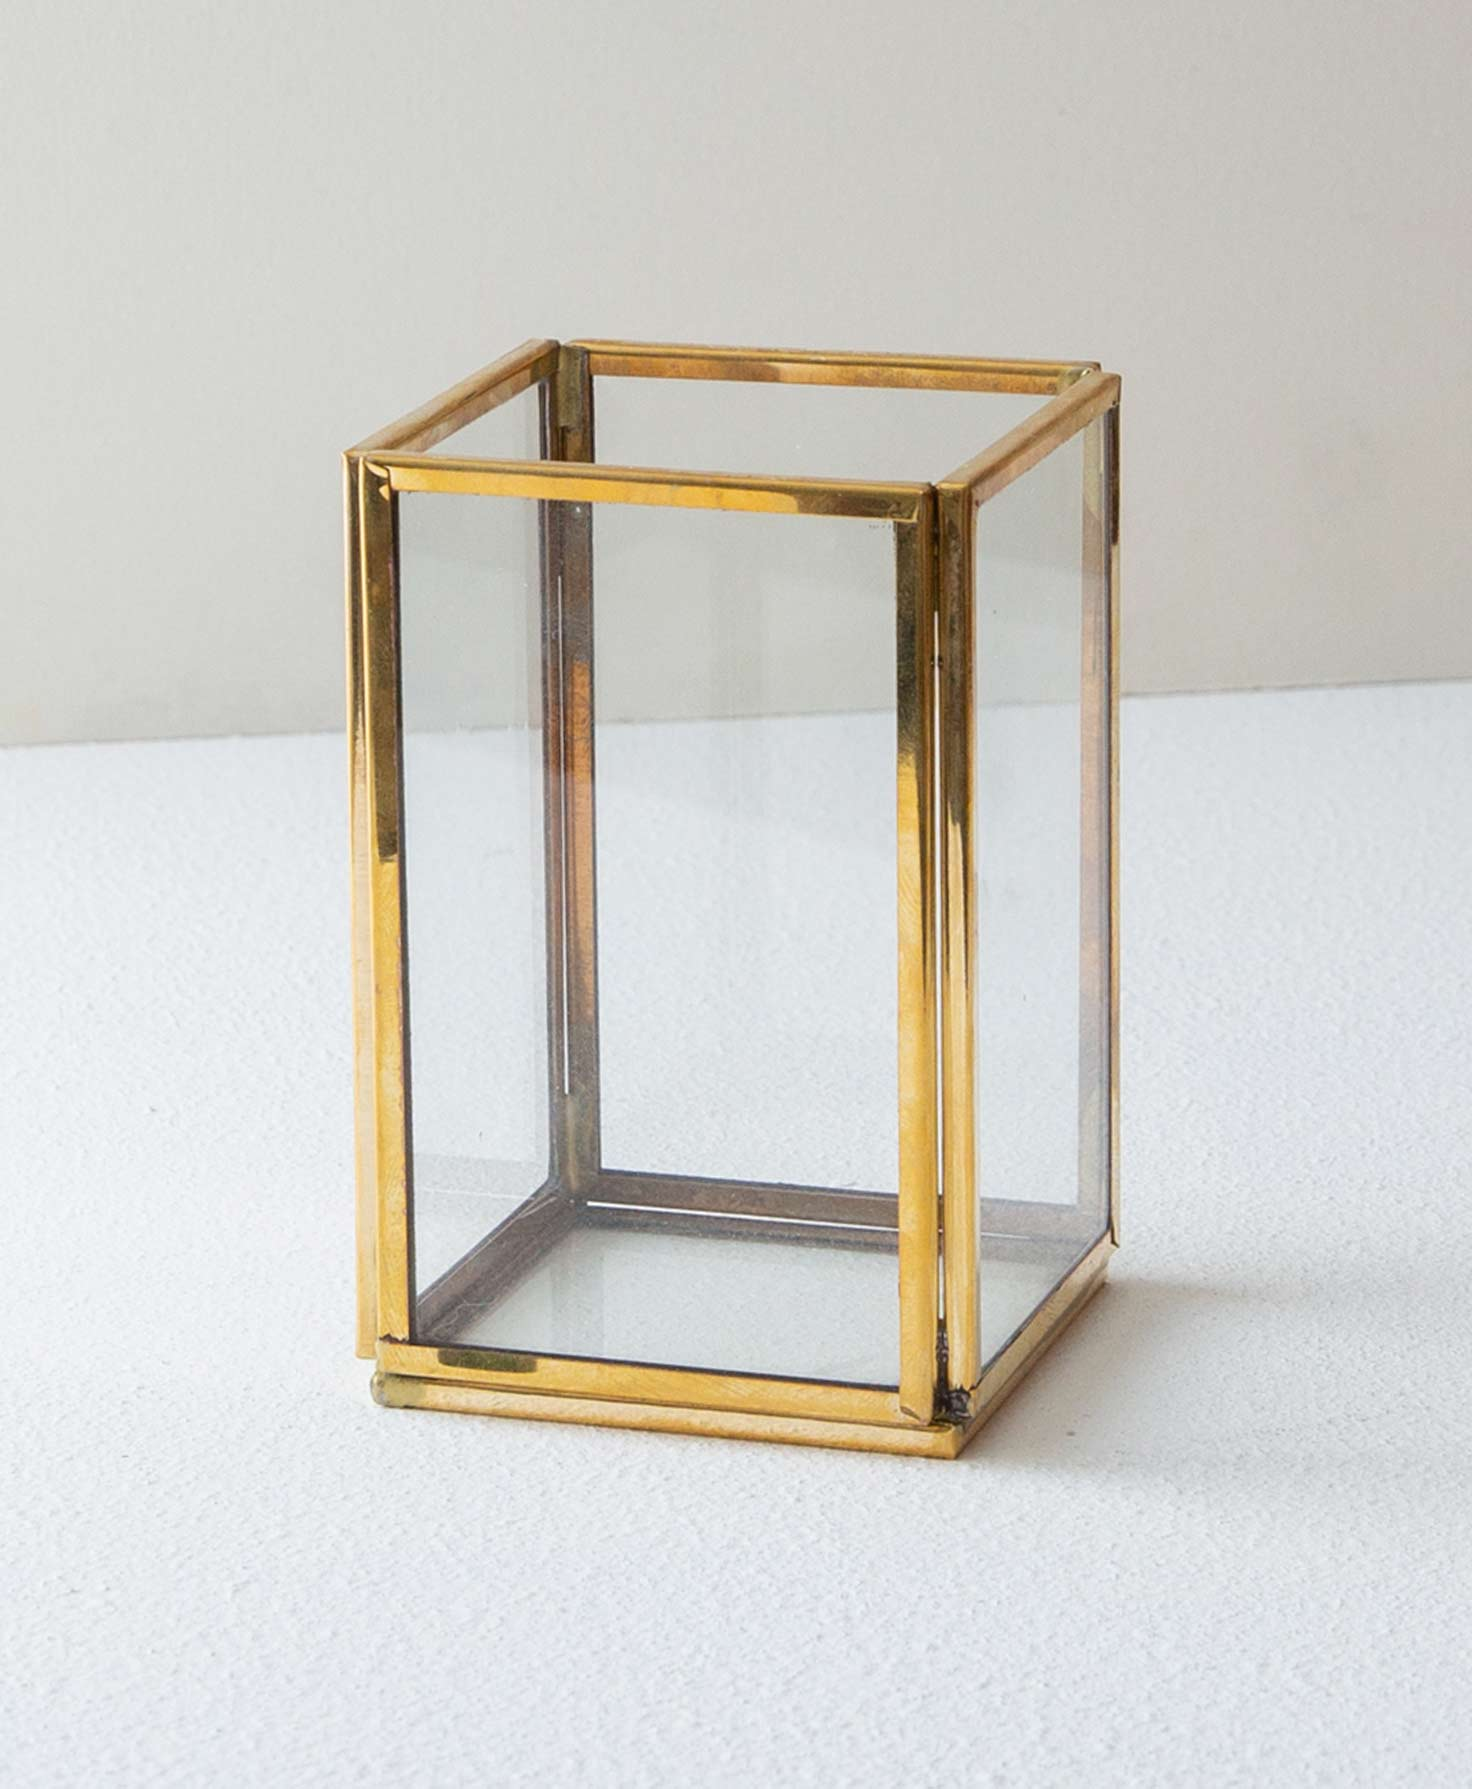 The Brass and Glass Penholder sits on a white surface. It has a square glass base framed in shining brass. Four vertical, rectangular glass panels outlined in brass form the sides of the penholder. It is open on top.